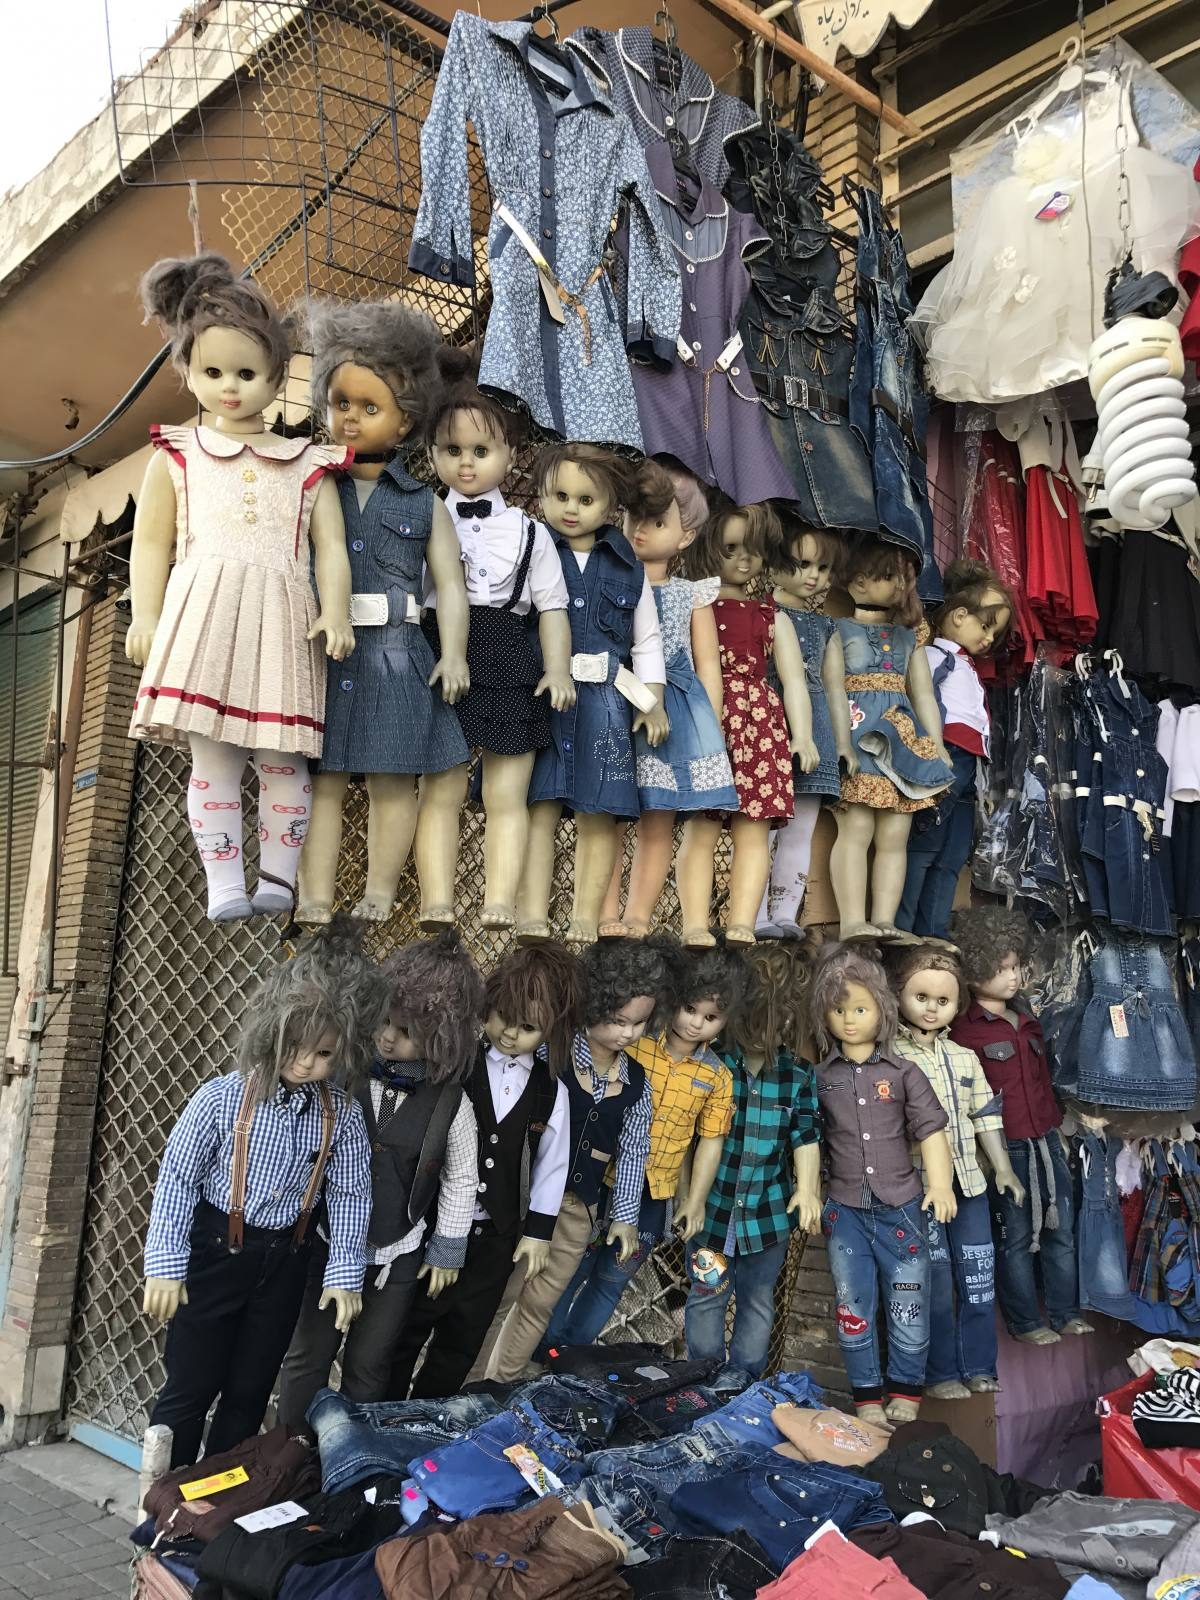 creepy dolls in Iran